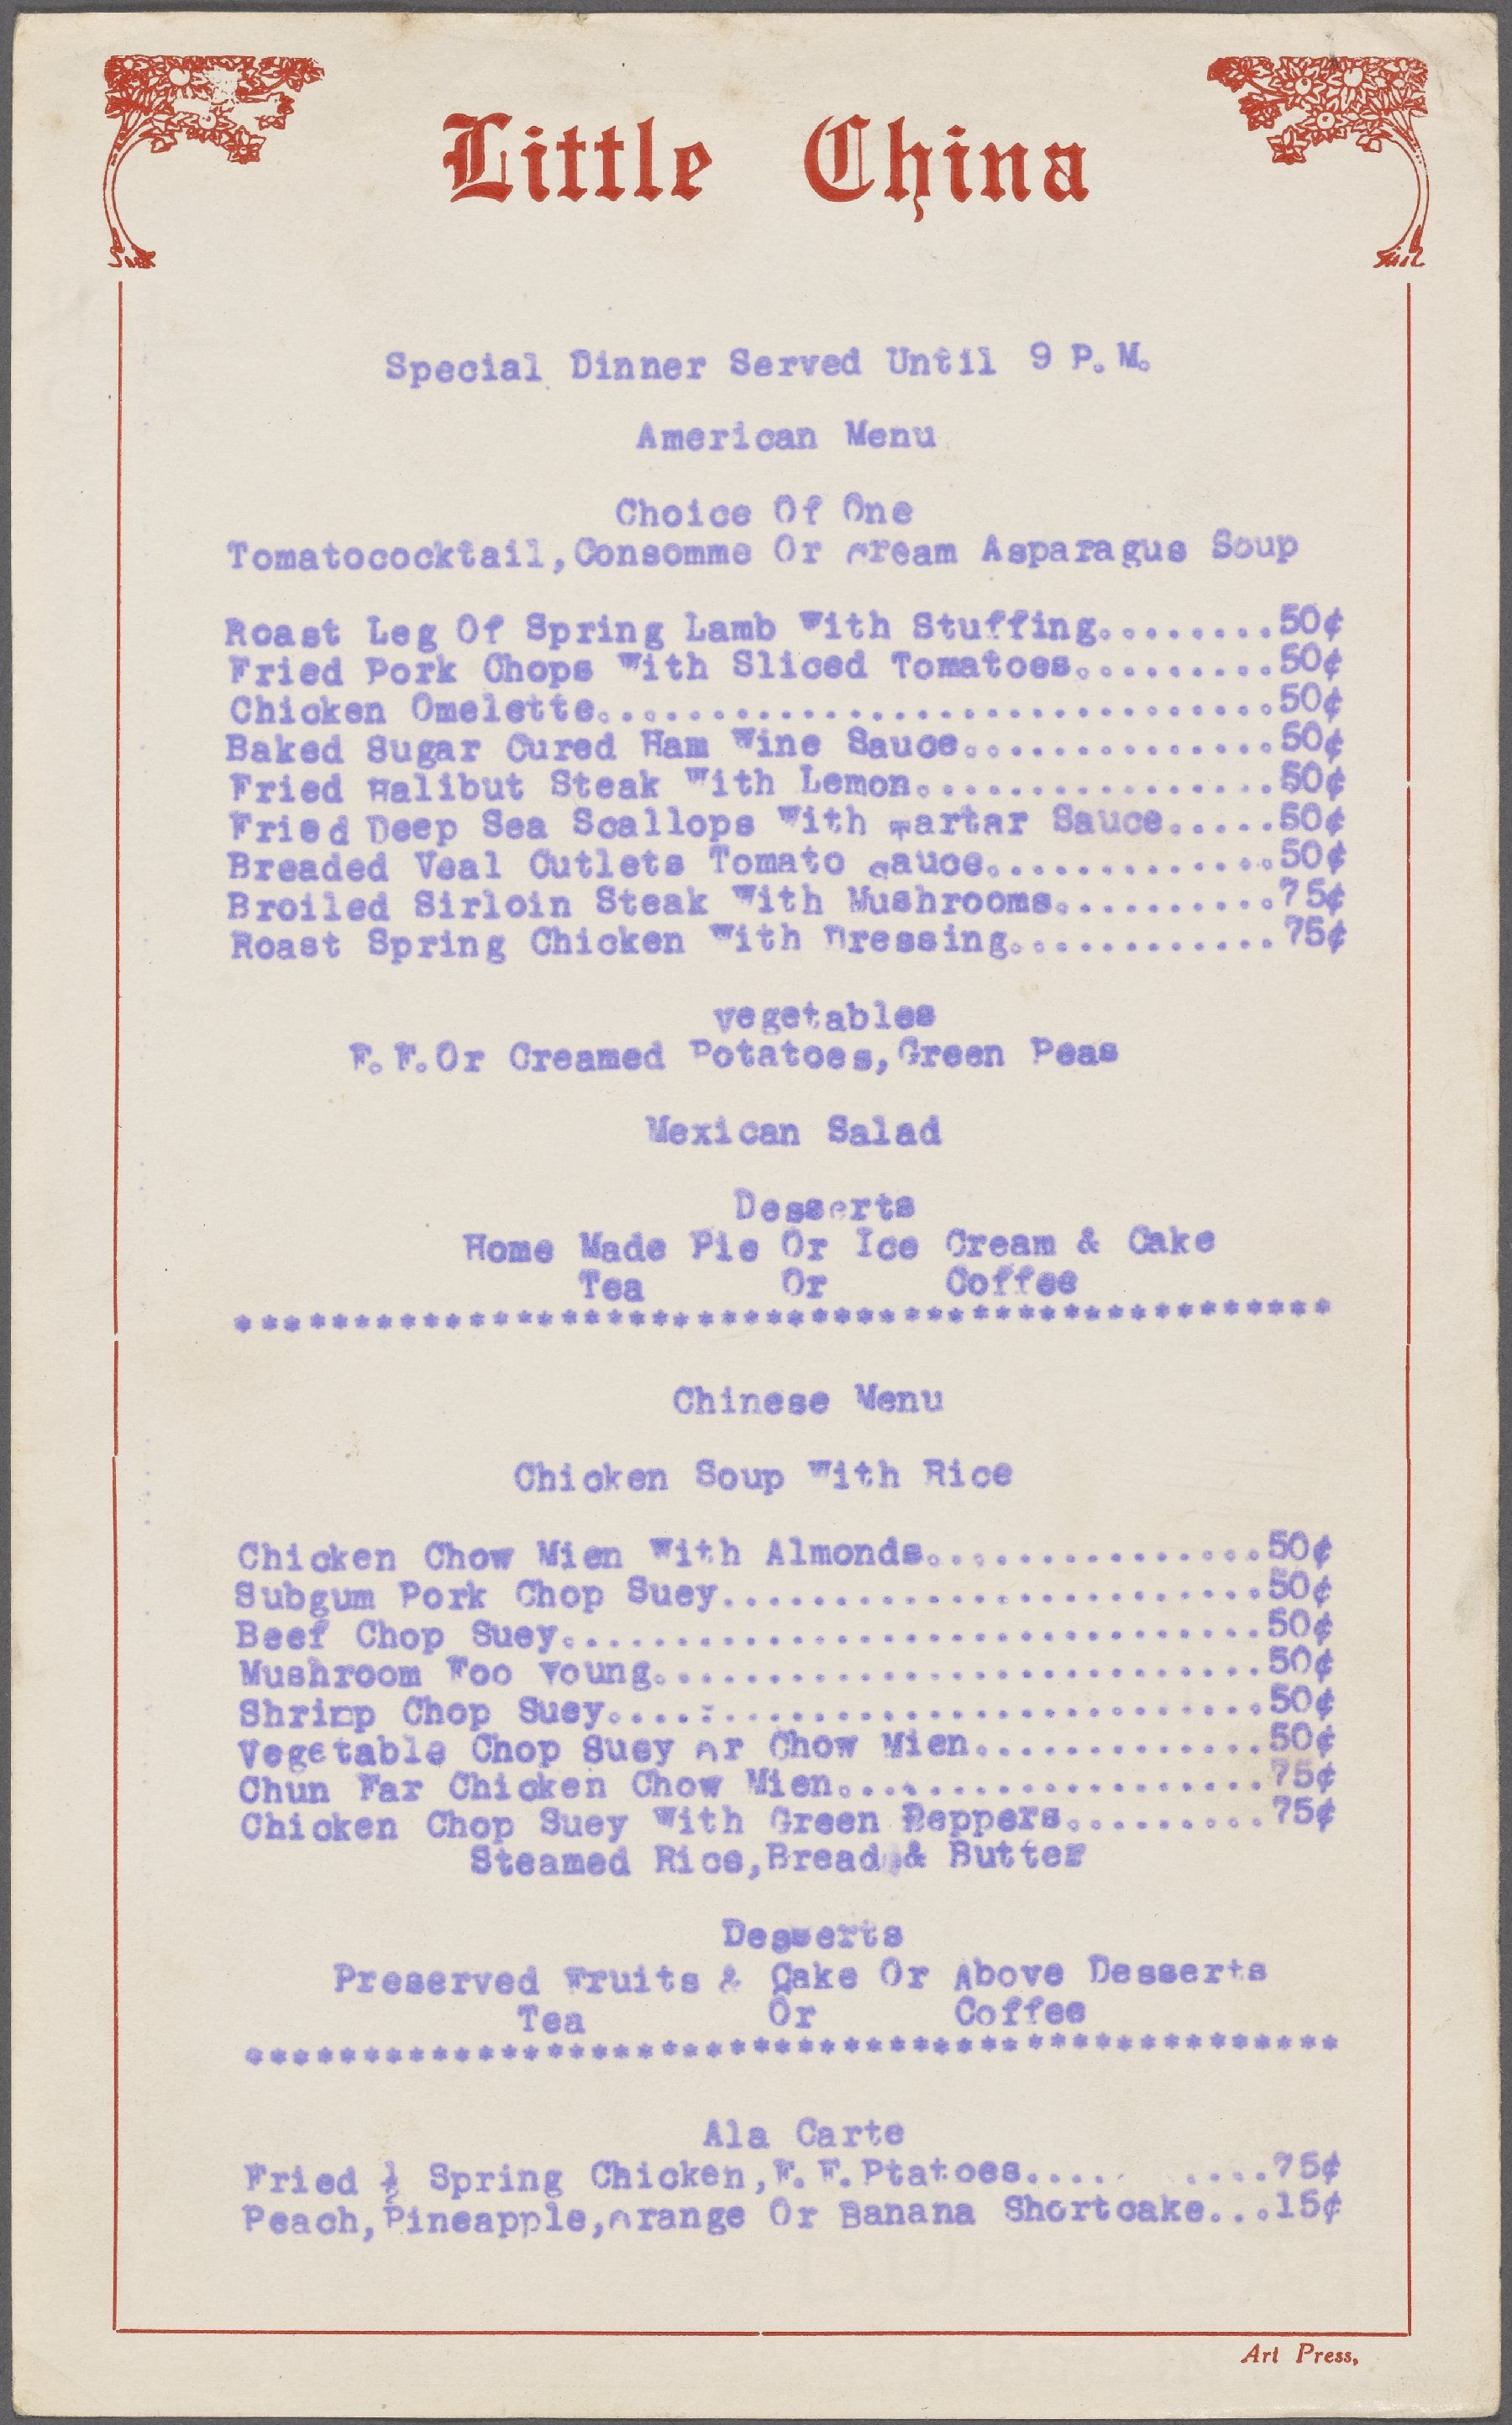 Little China Syracuse Ny 1938 American Vs Chinese Menu Chinese Menu Chinese Takeaway Menu Vintage Menu